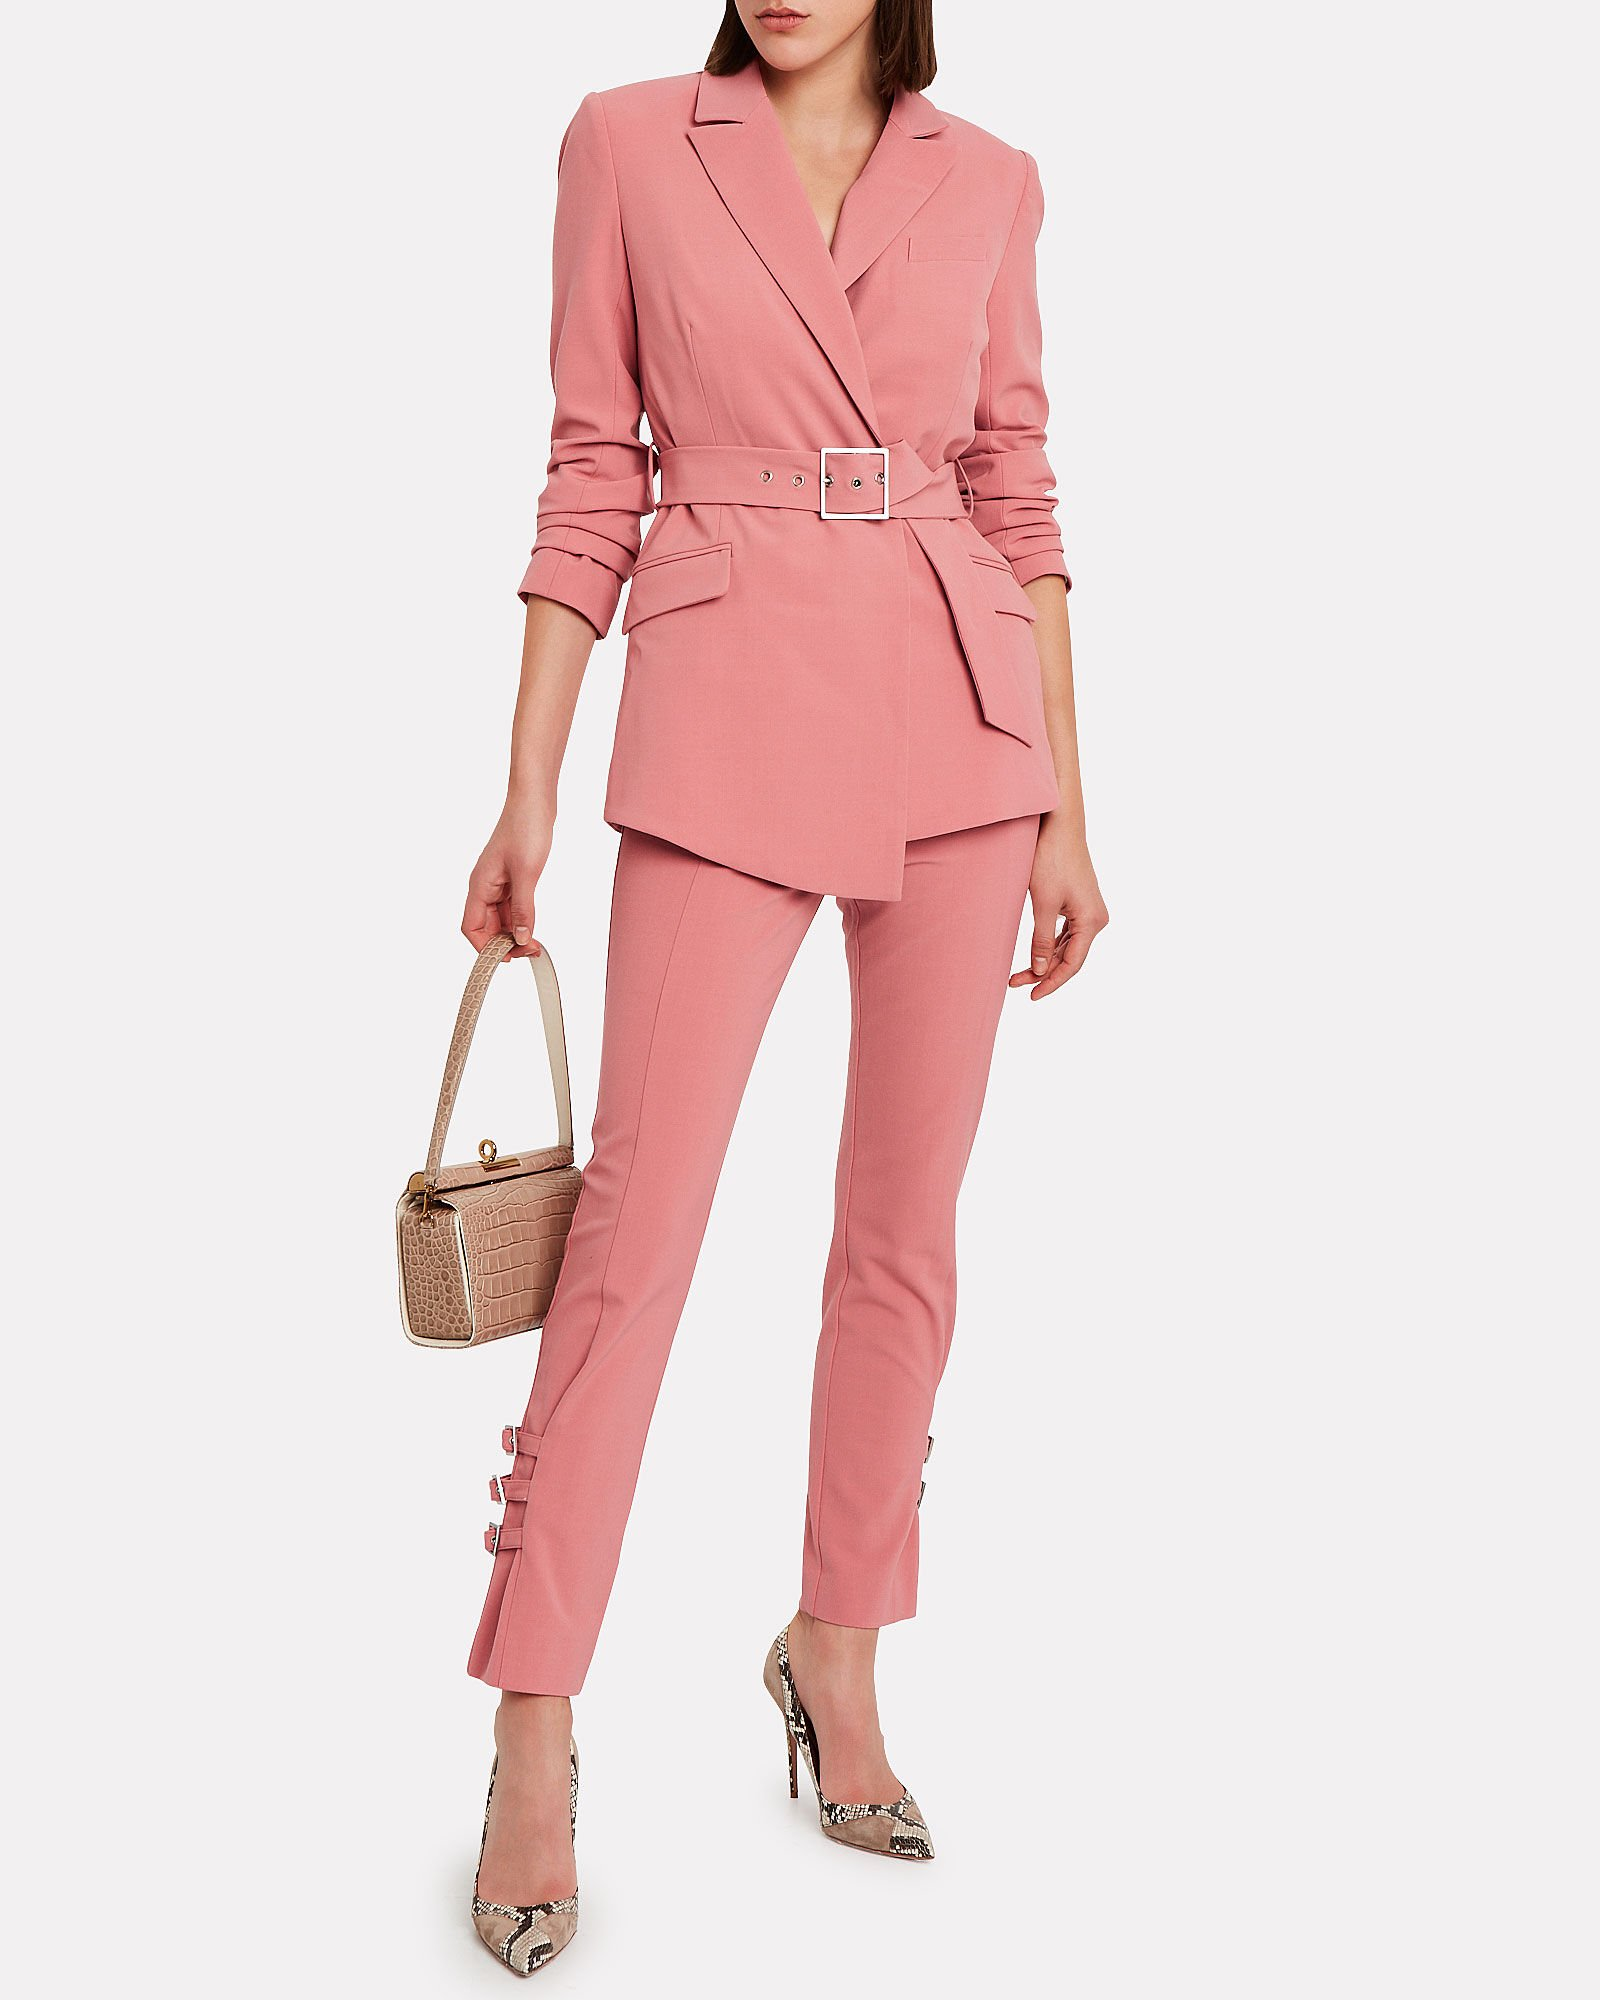 Wool-Blend Buckled E-Cig Trousers, CORAL, hi-res